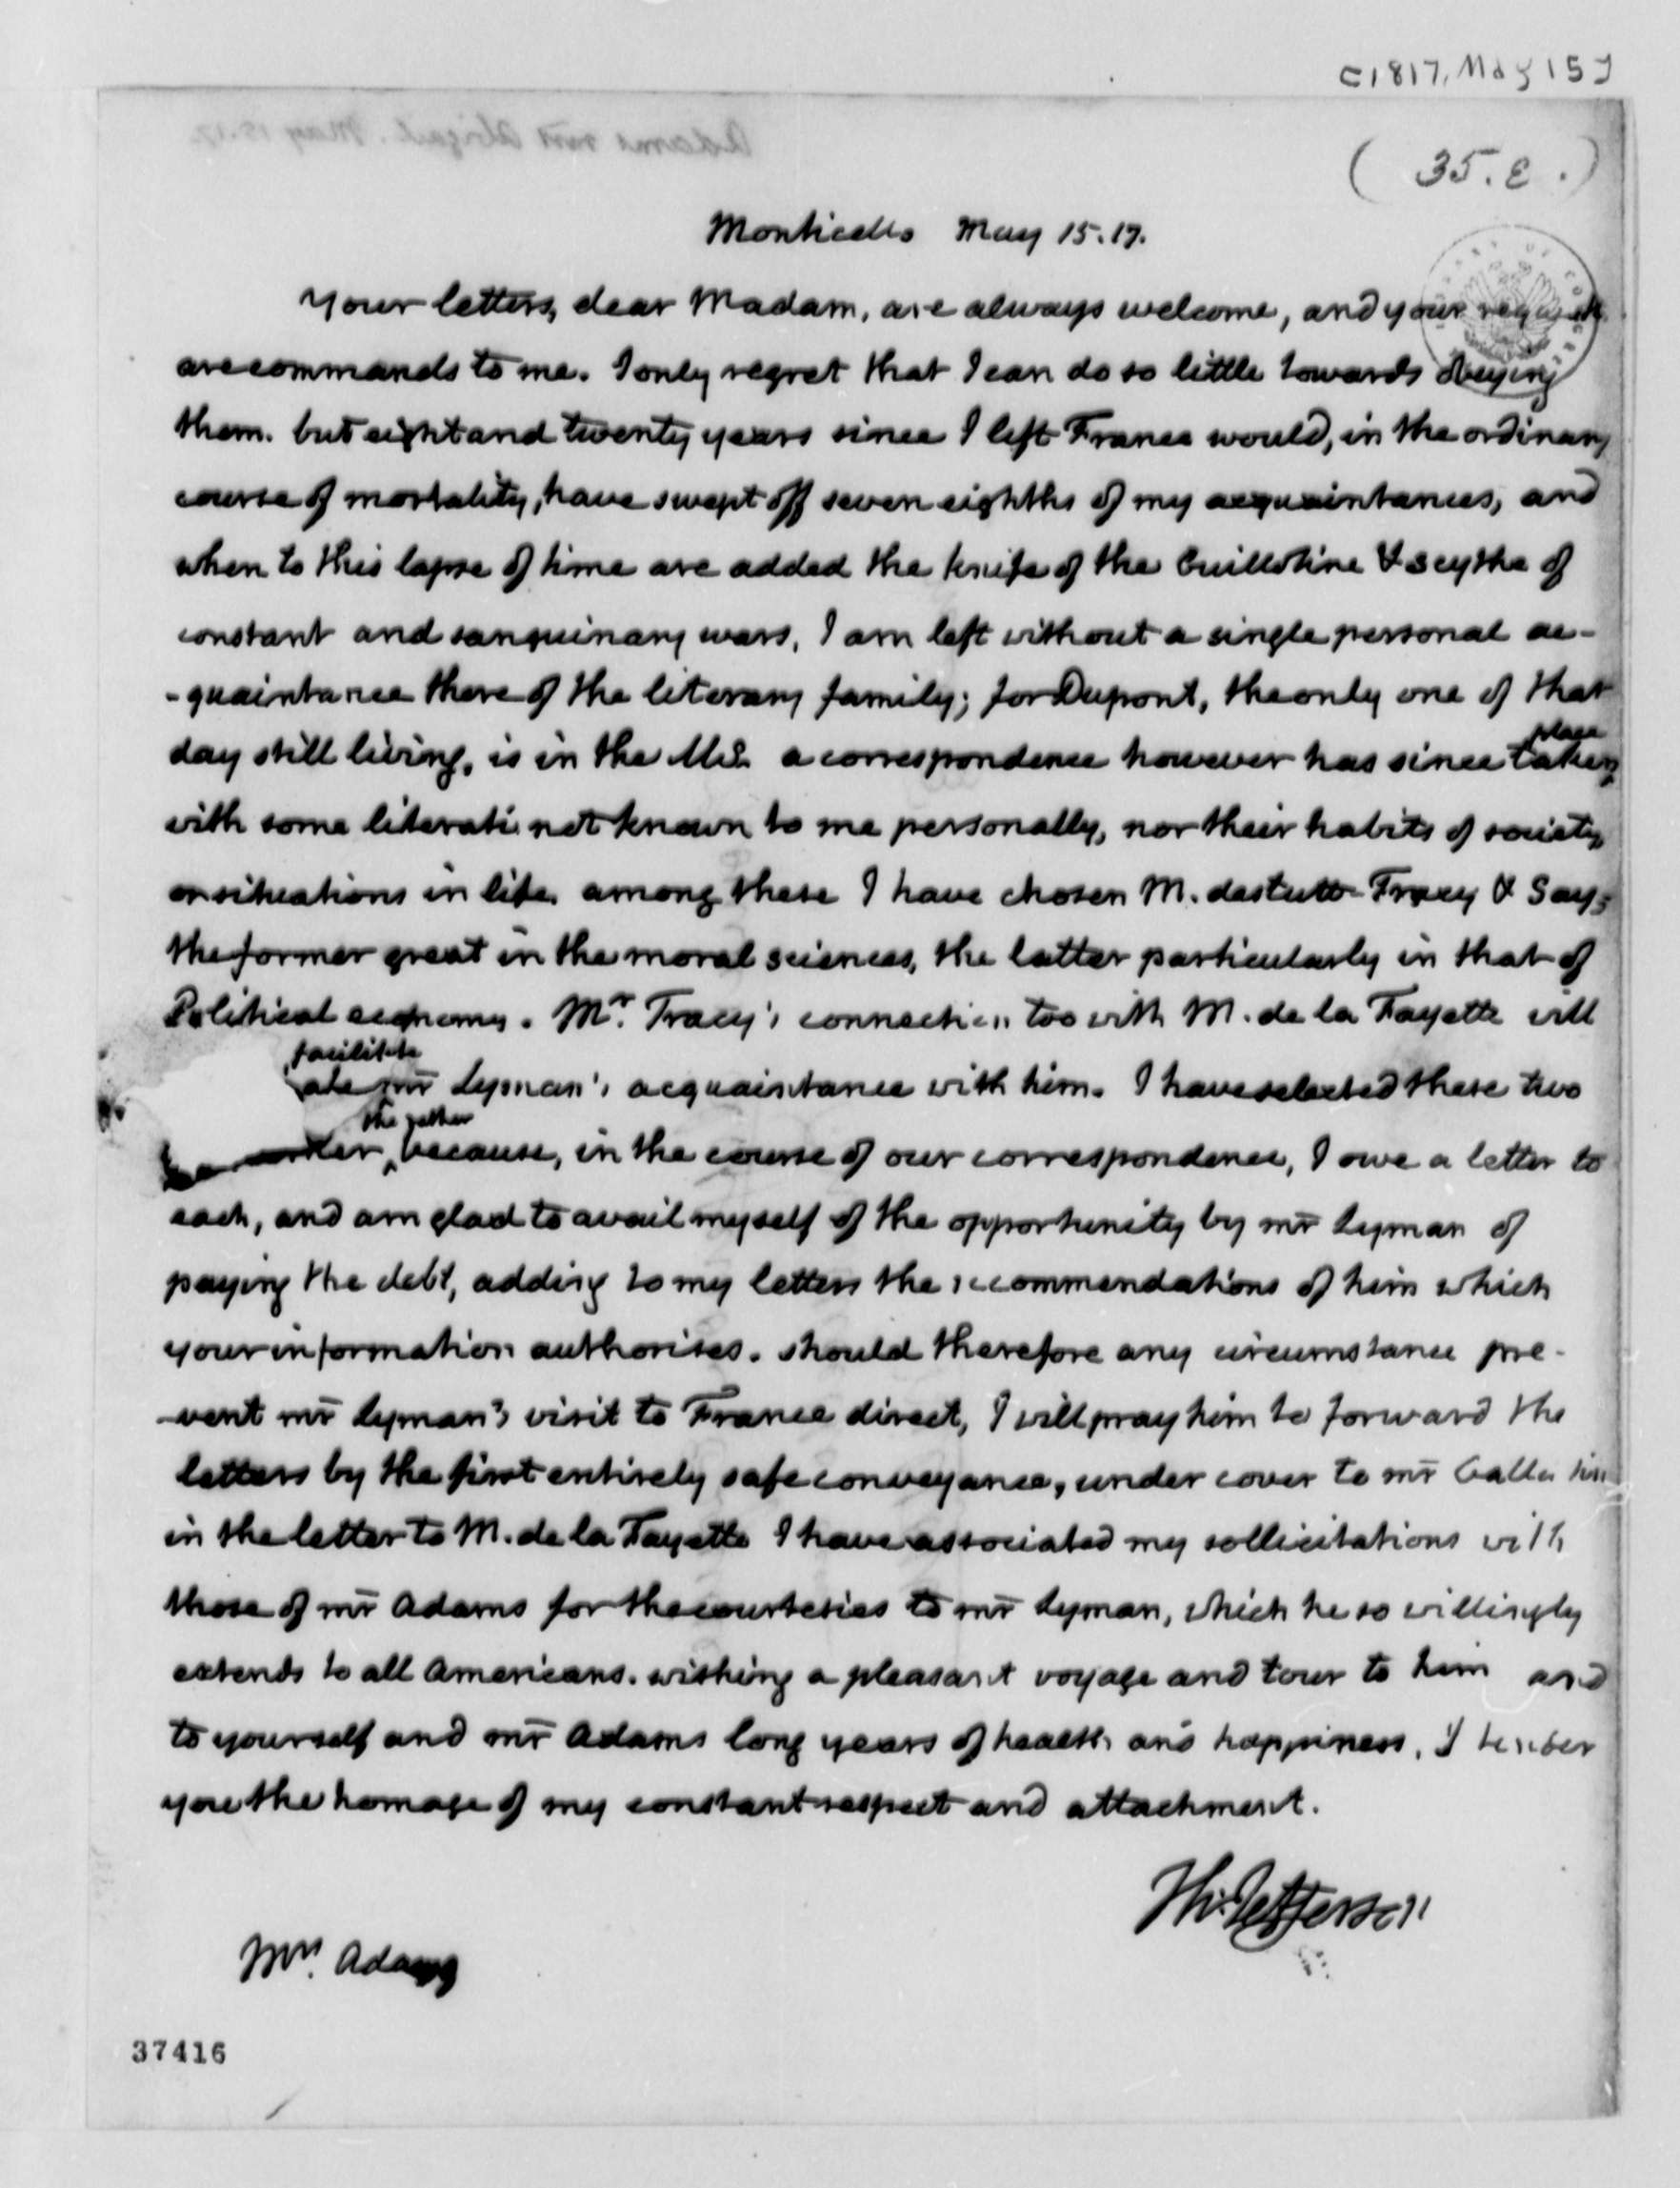 009 Thomas Jefferson Essay Magnificent Questions High School Sample Full